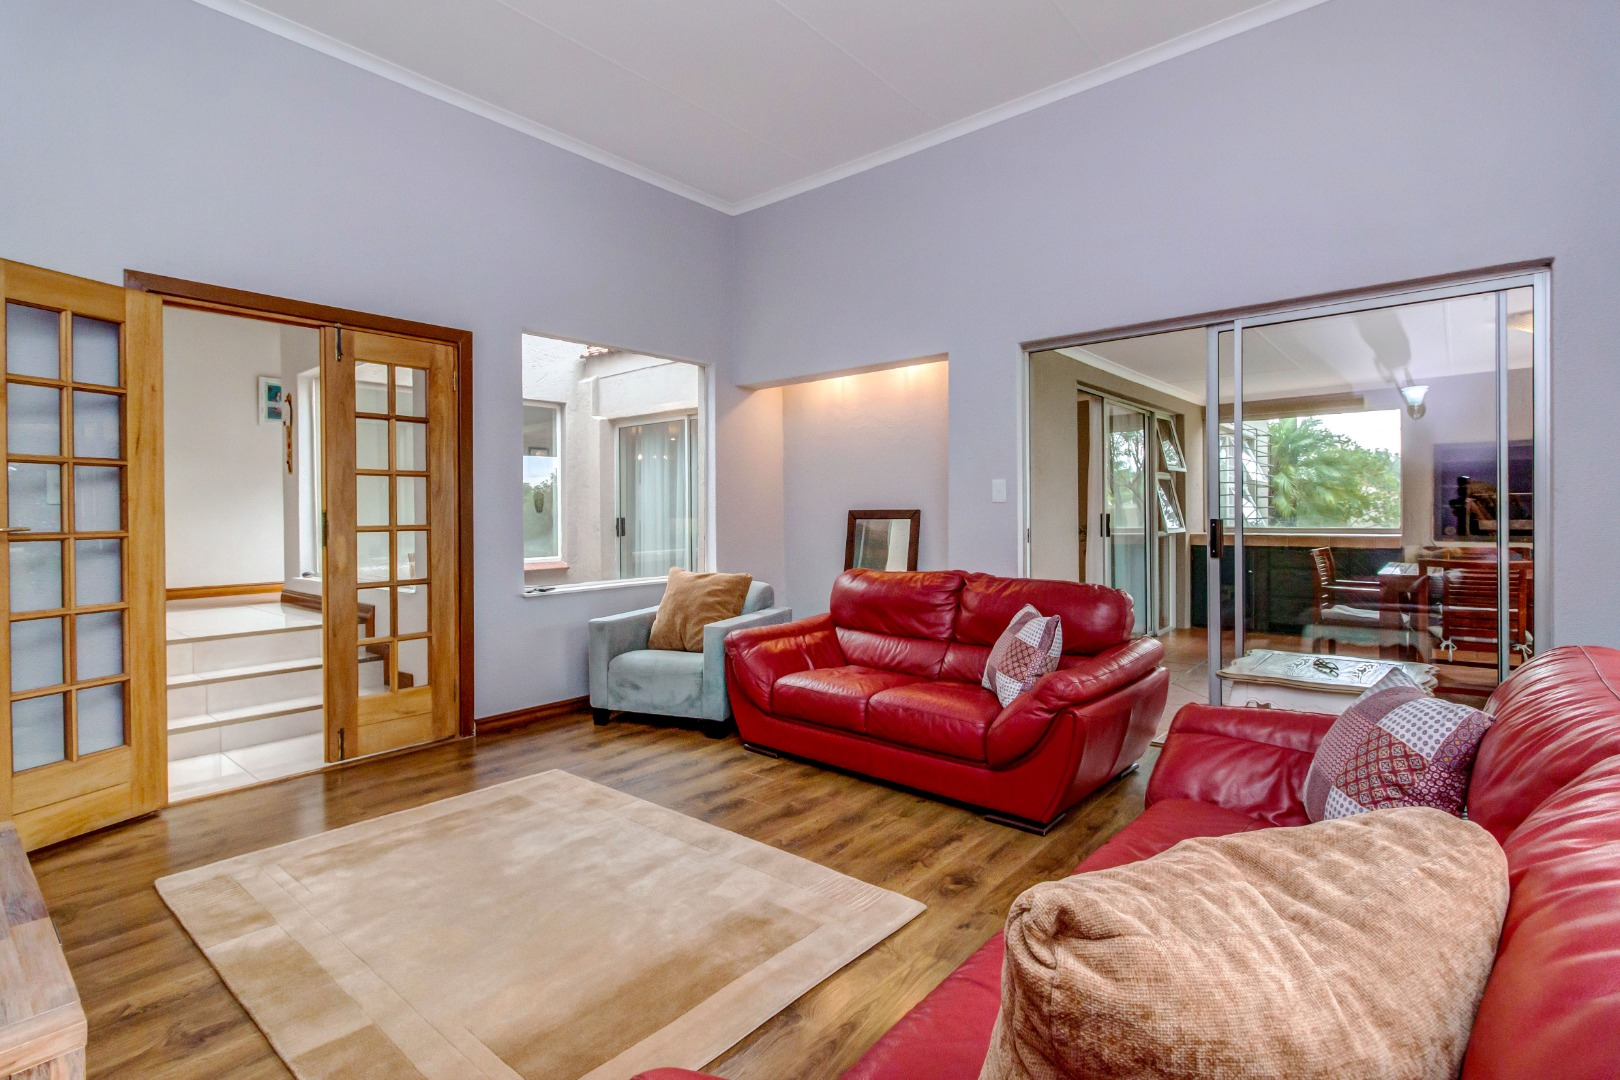 4 Bedroom House For Sale in Douglasdale